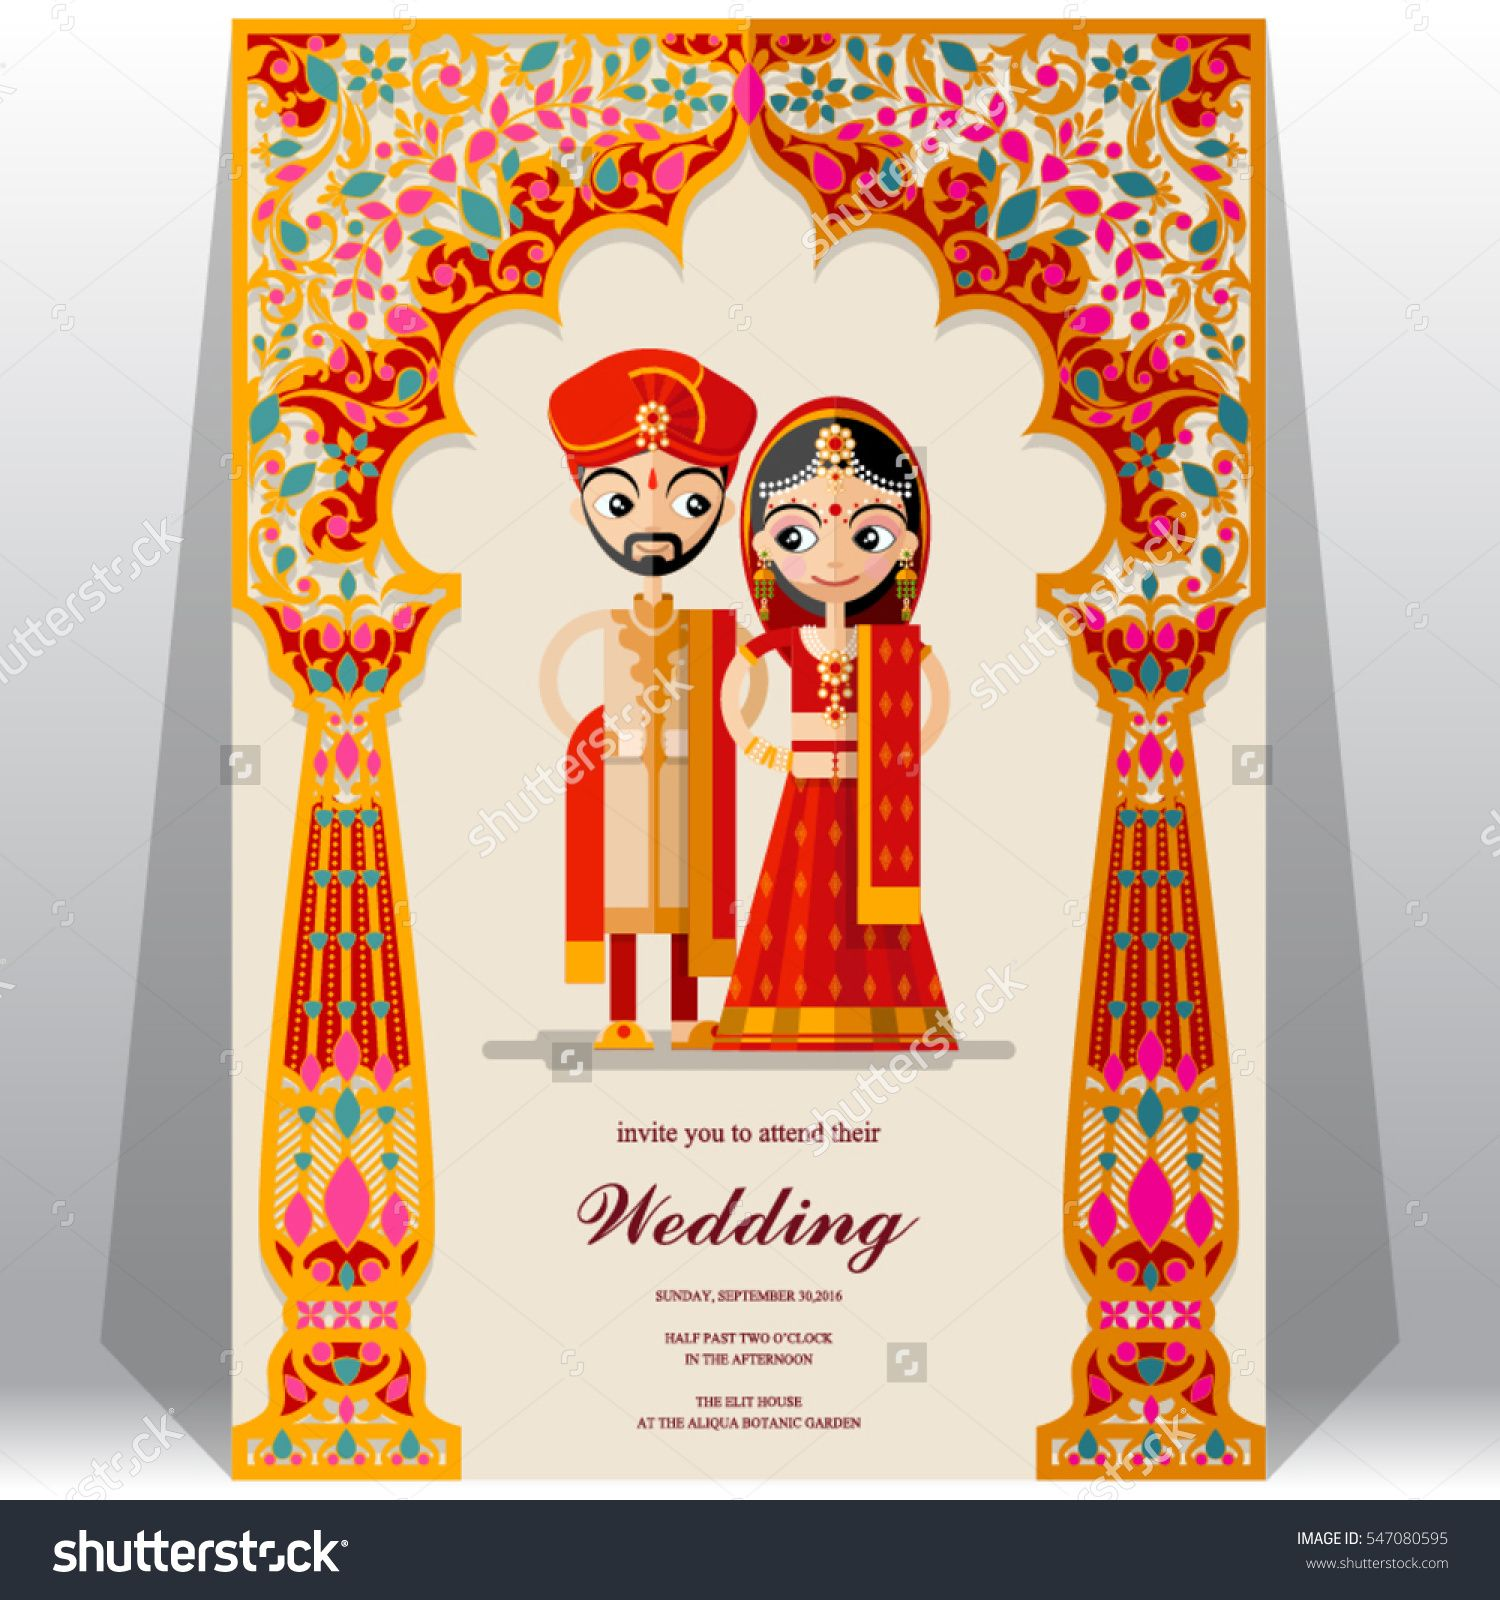 stock-vector-indian-wedding-invitation-card-547080595.jpg 1,500 ...